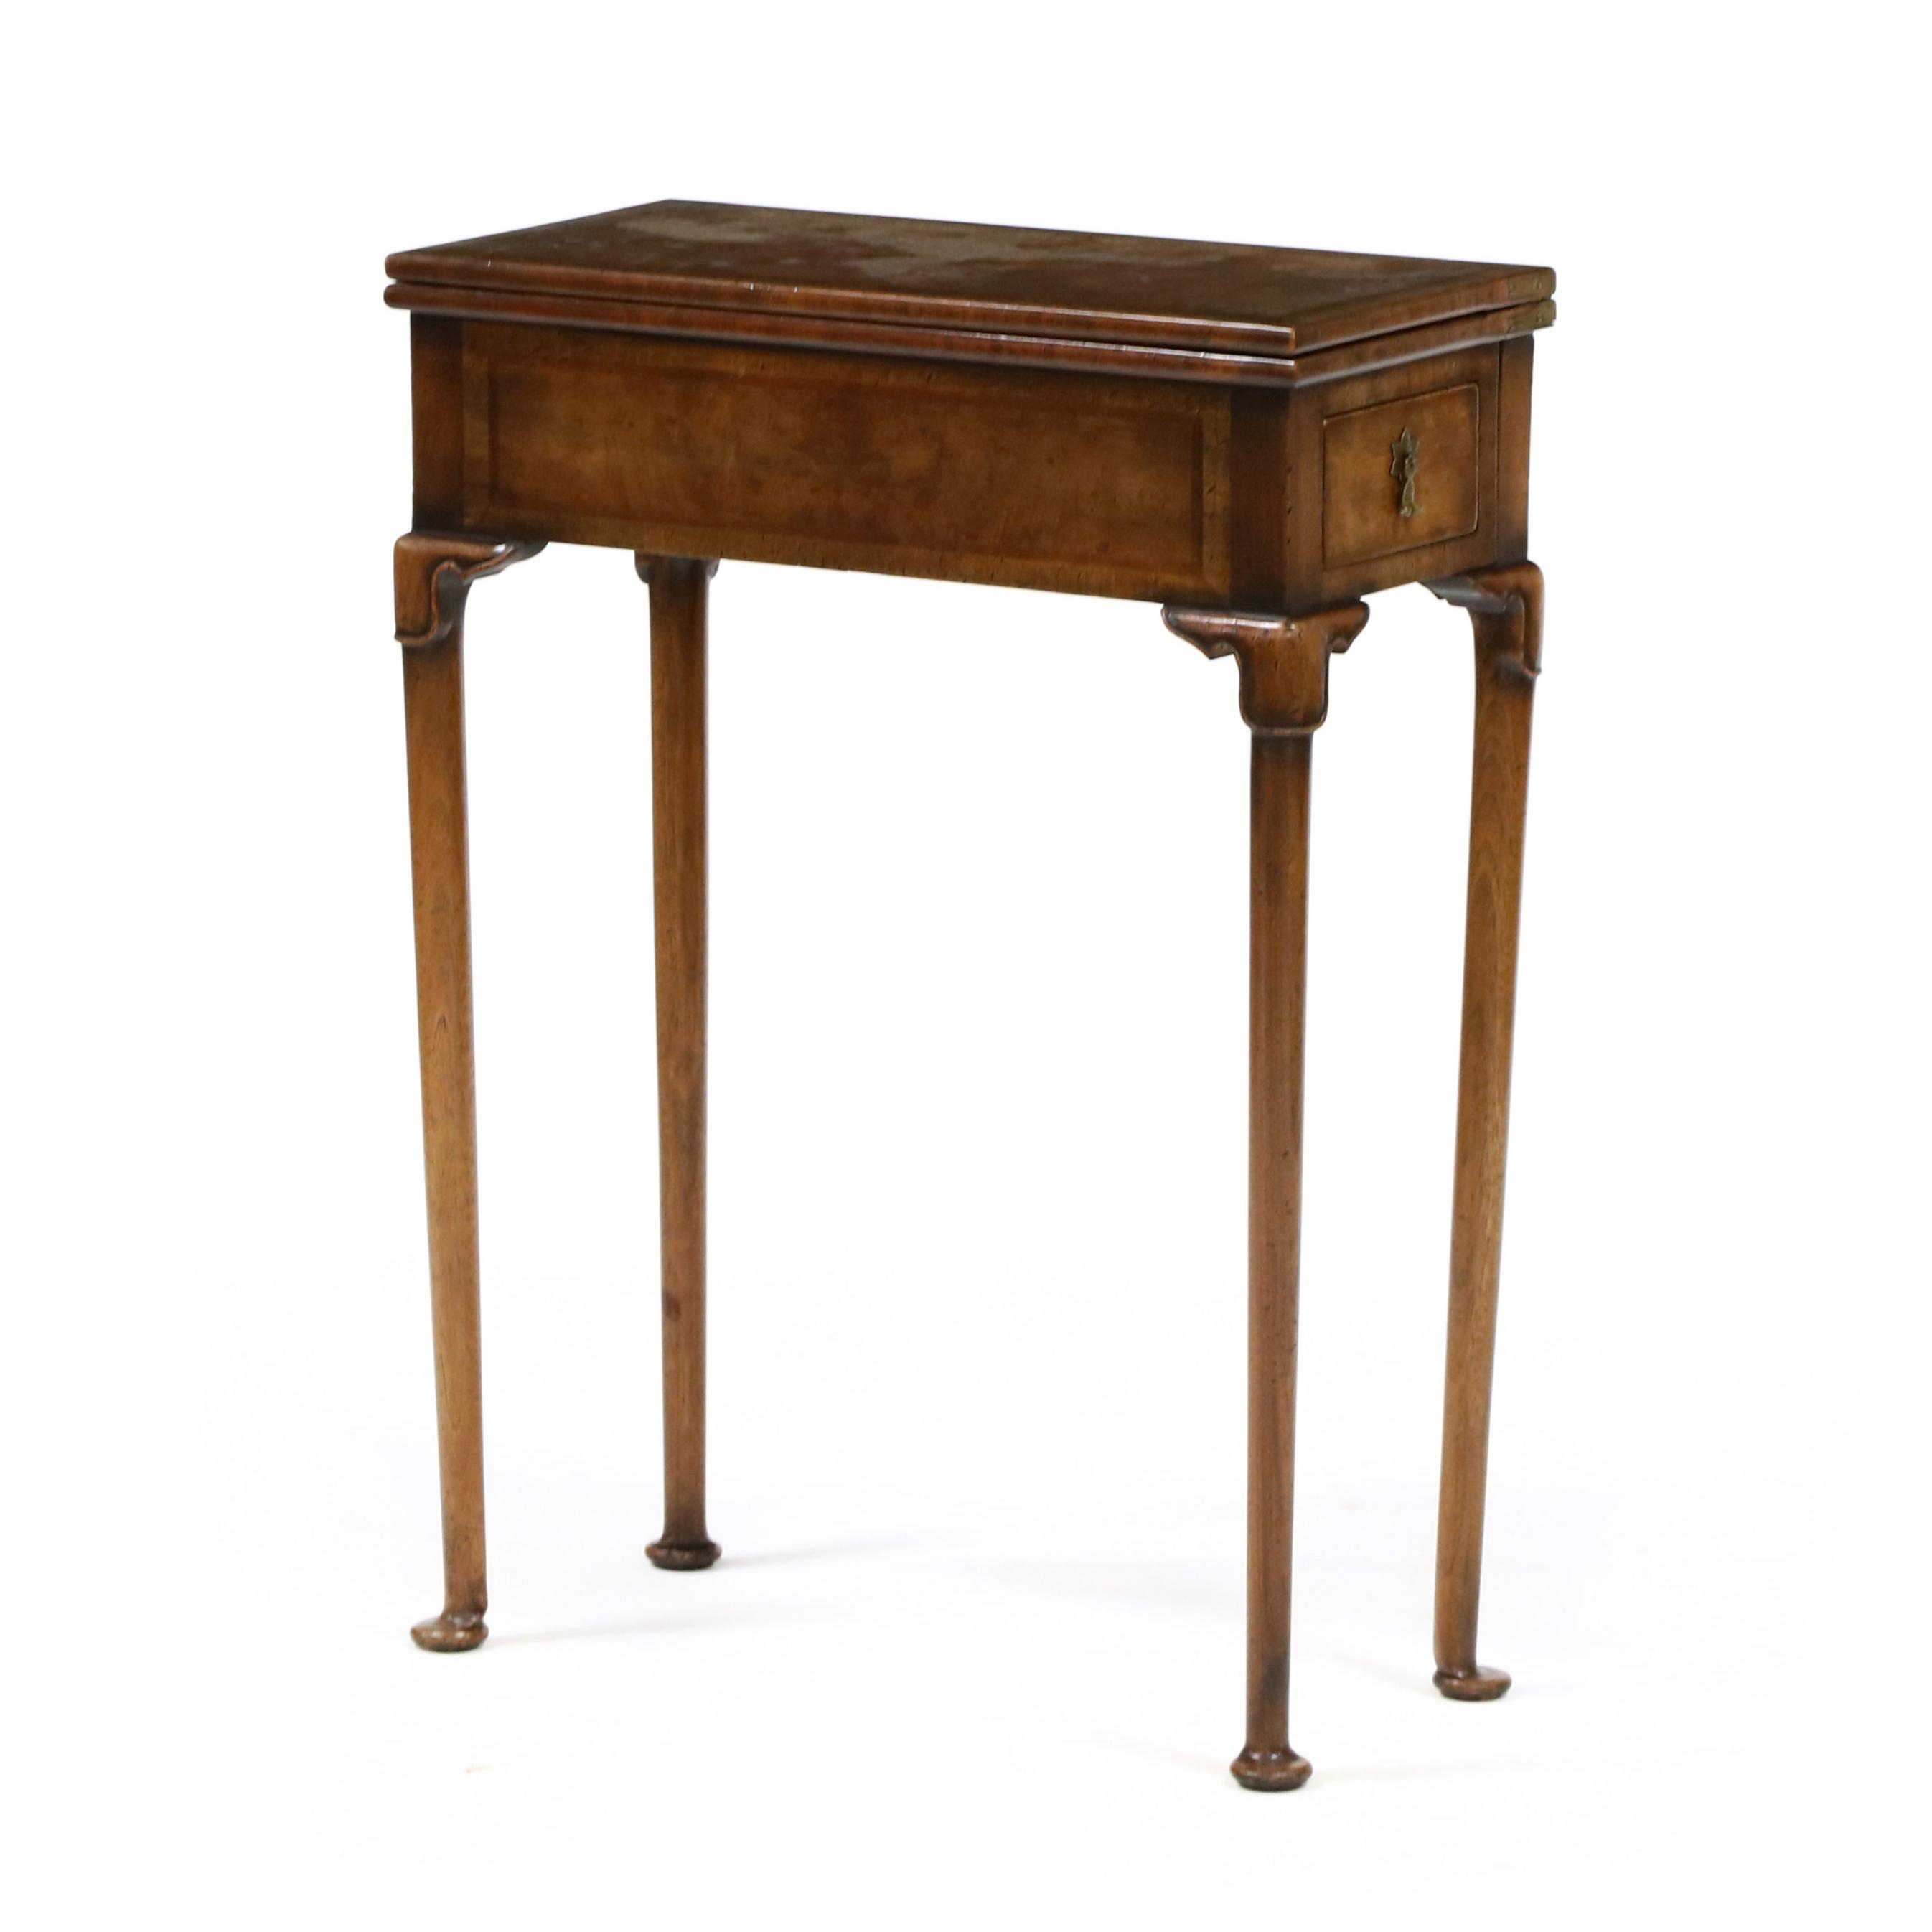 queen-anne-style-diminutive-game-table-e-r-wilkerson